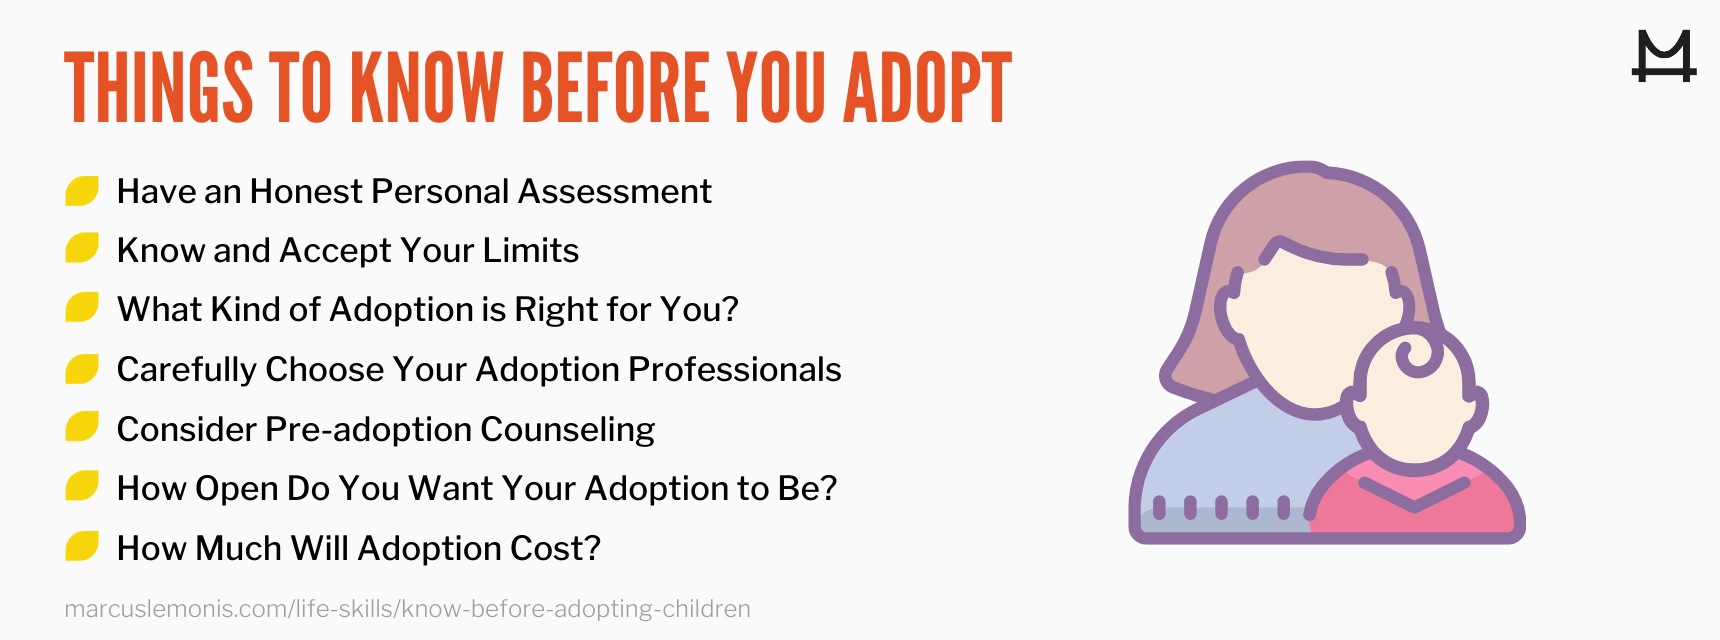 List of things to know before adopting.